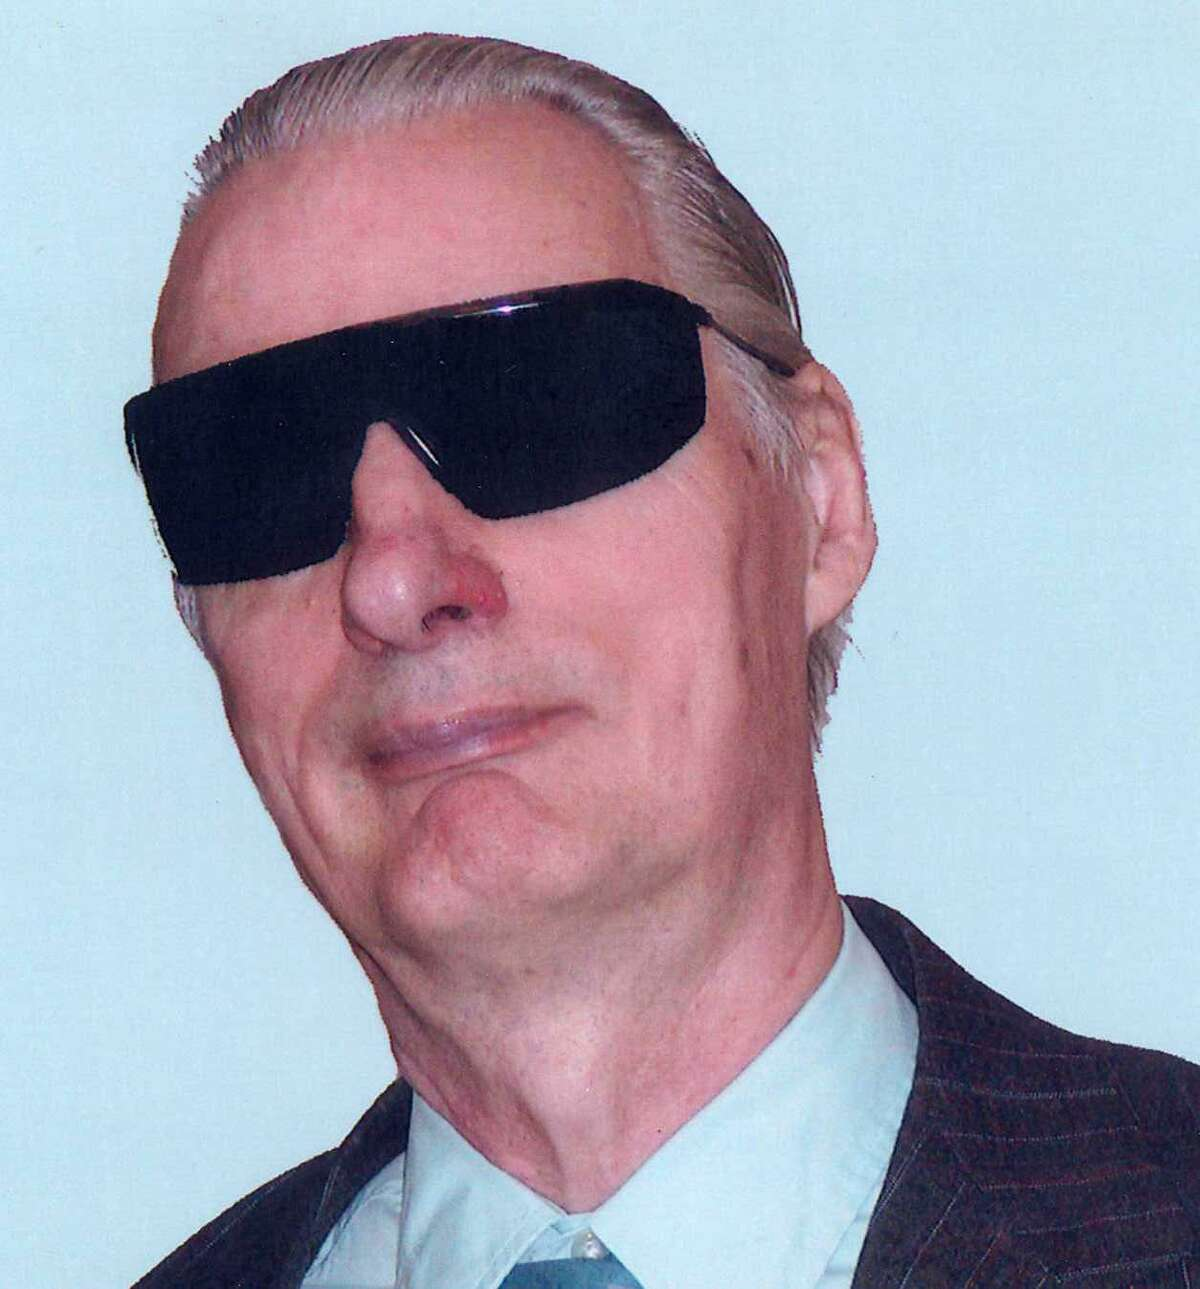 Larry P. Johnson, radio and television broadcaster, motivational speaker, and author of the book 'Mexico By Touch: True Life Experiences of a Blind American Dee-jay